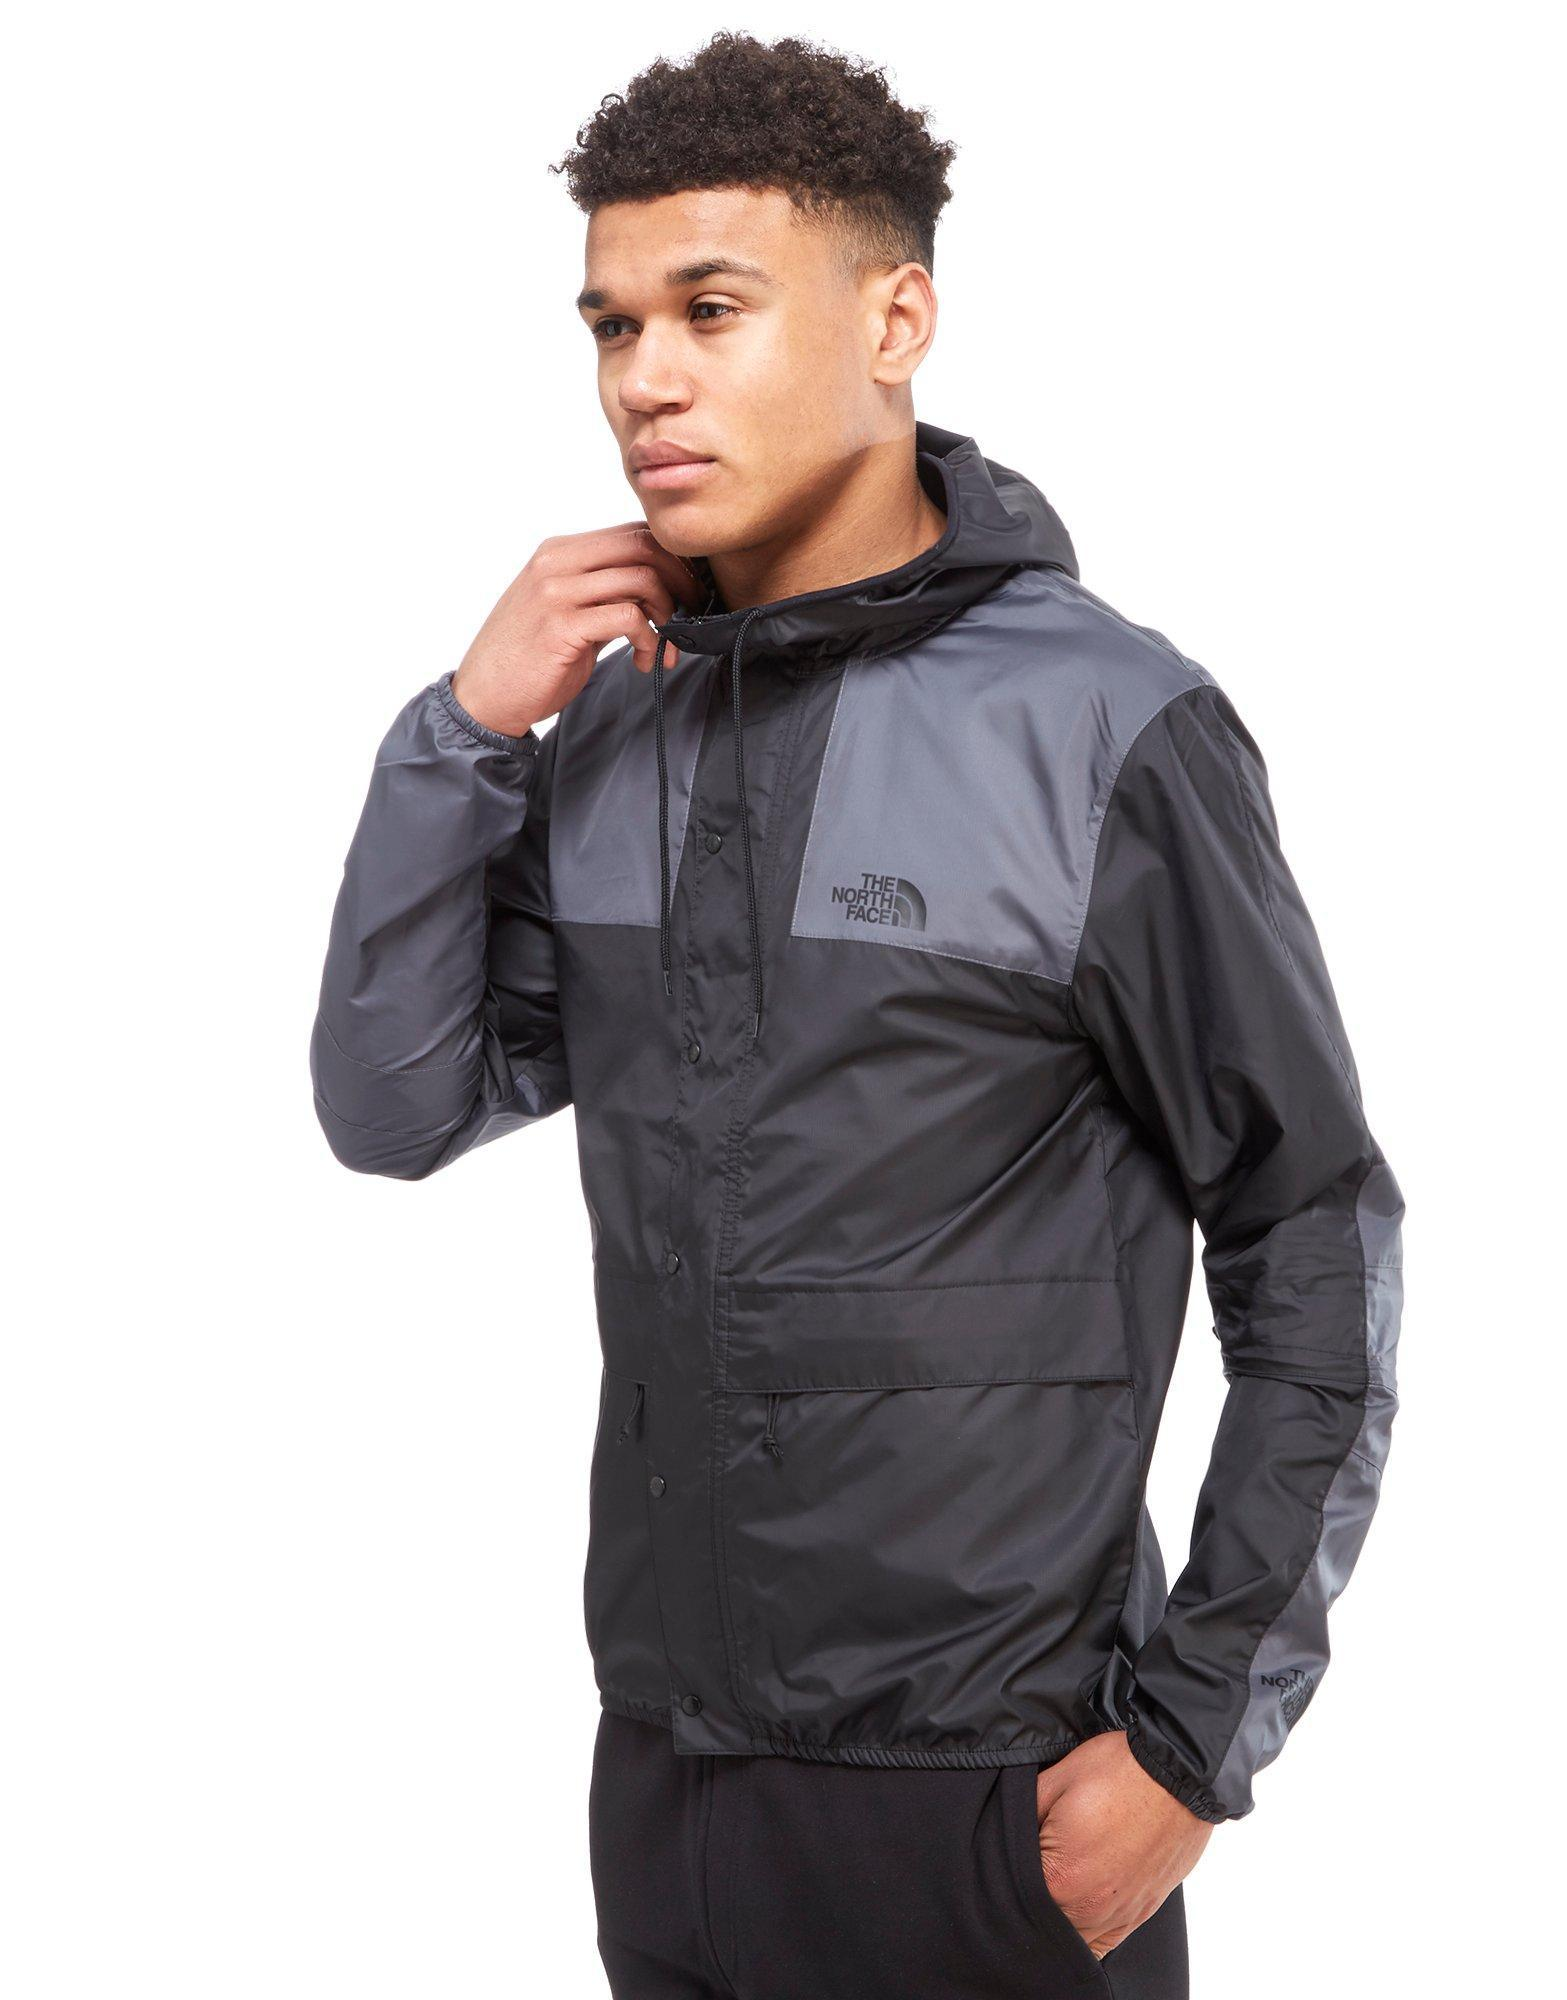 436d34ca1 The North Face Black 1985 Mountain Jacket for men